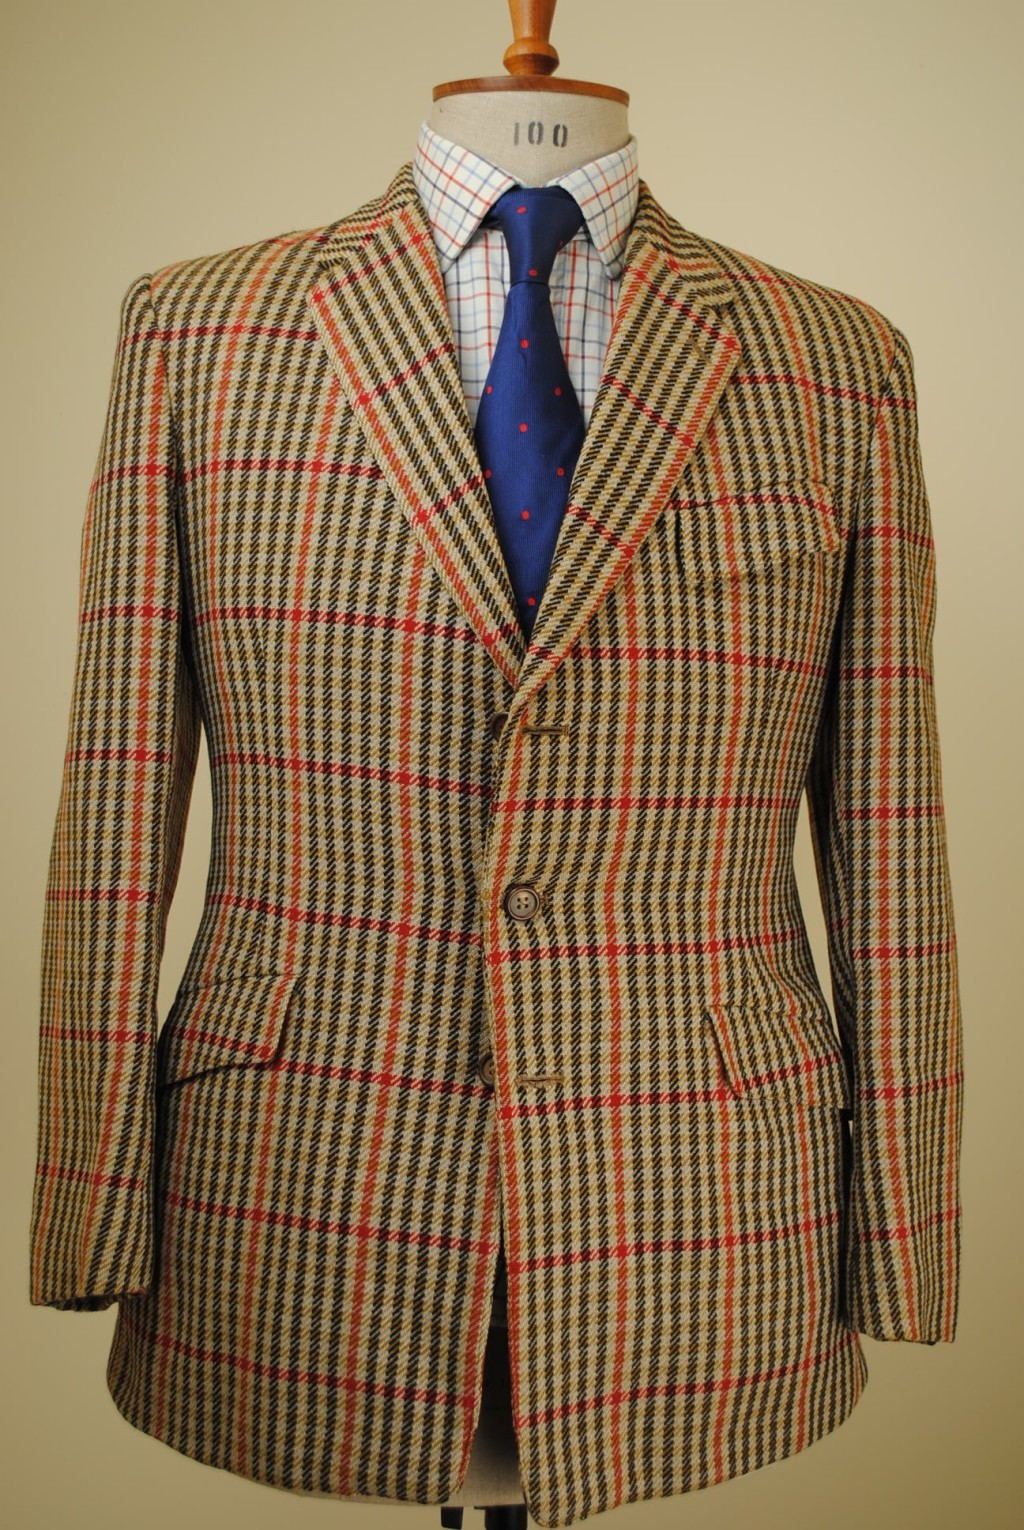 Beautiful Vintage Huntsman Tweed Jacket Styleforum